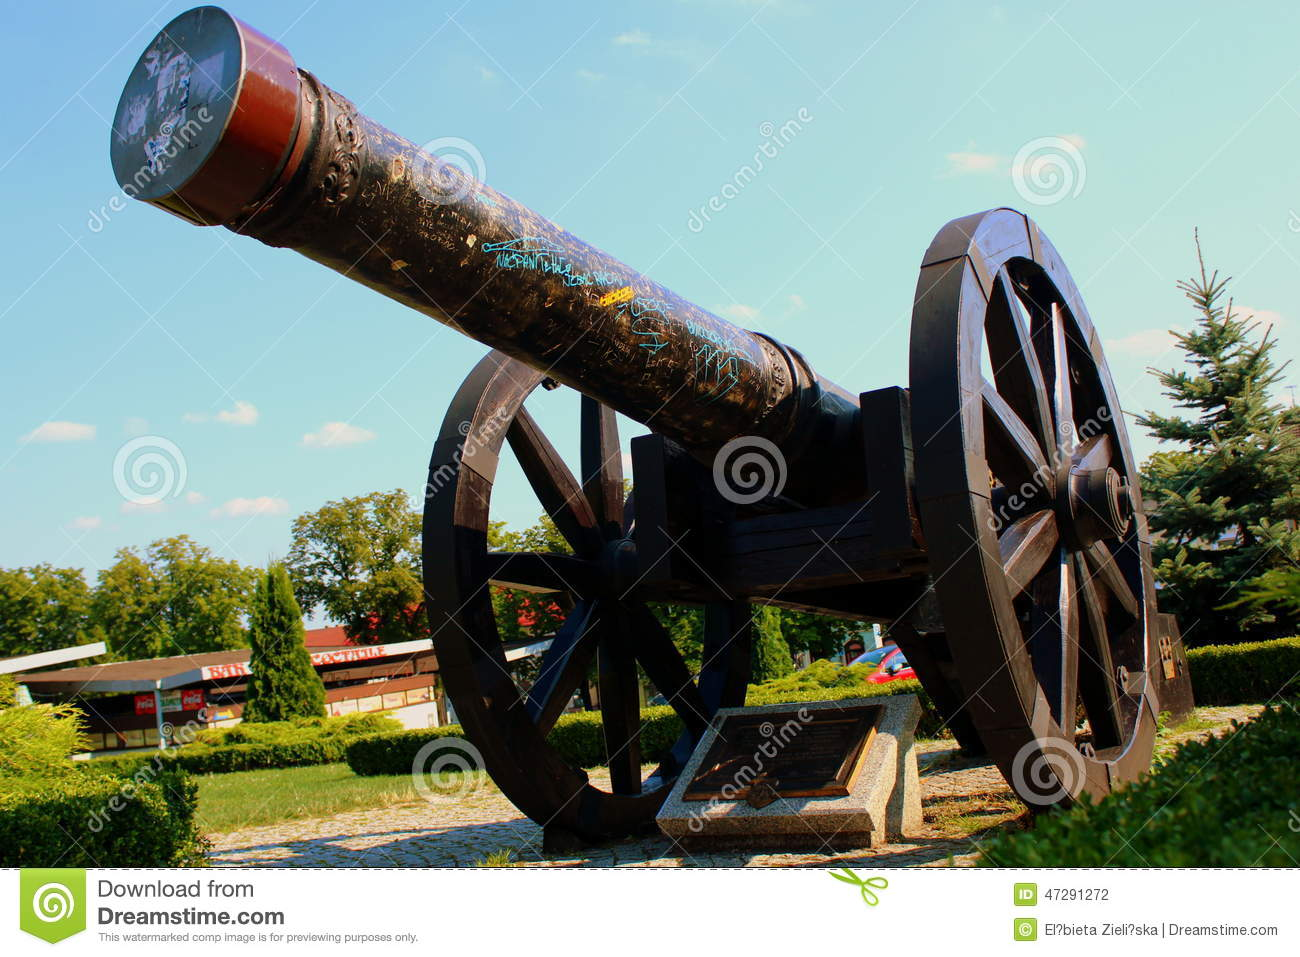 The cannon of the seventeenth century.